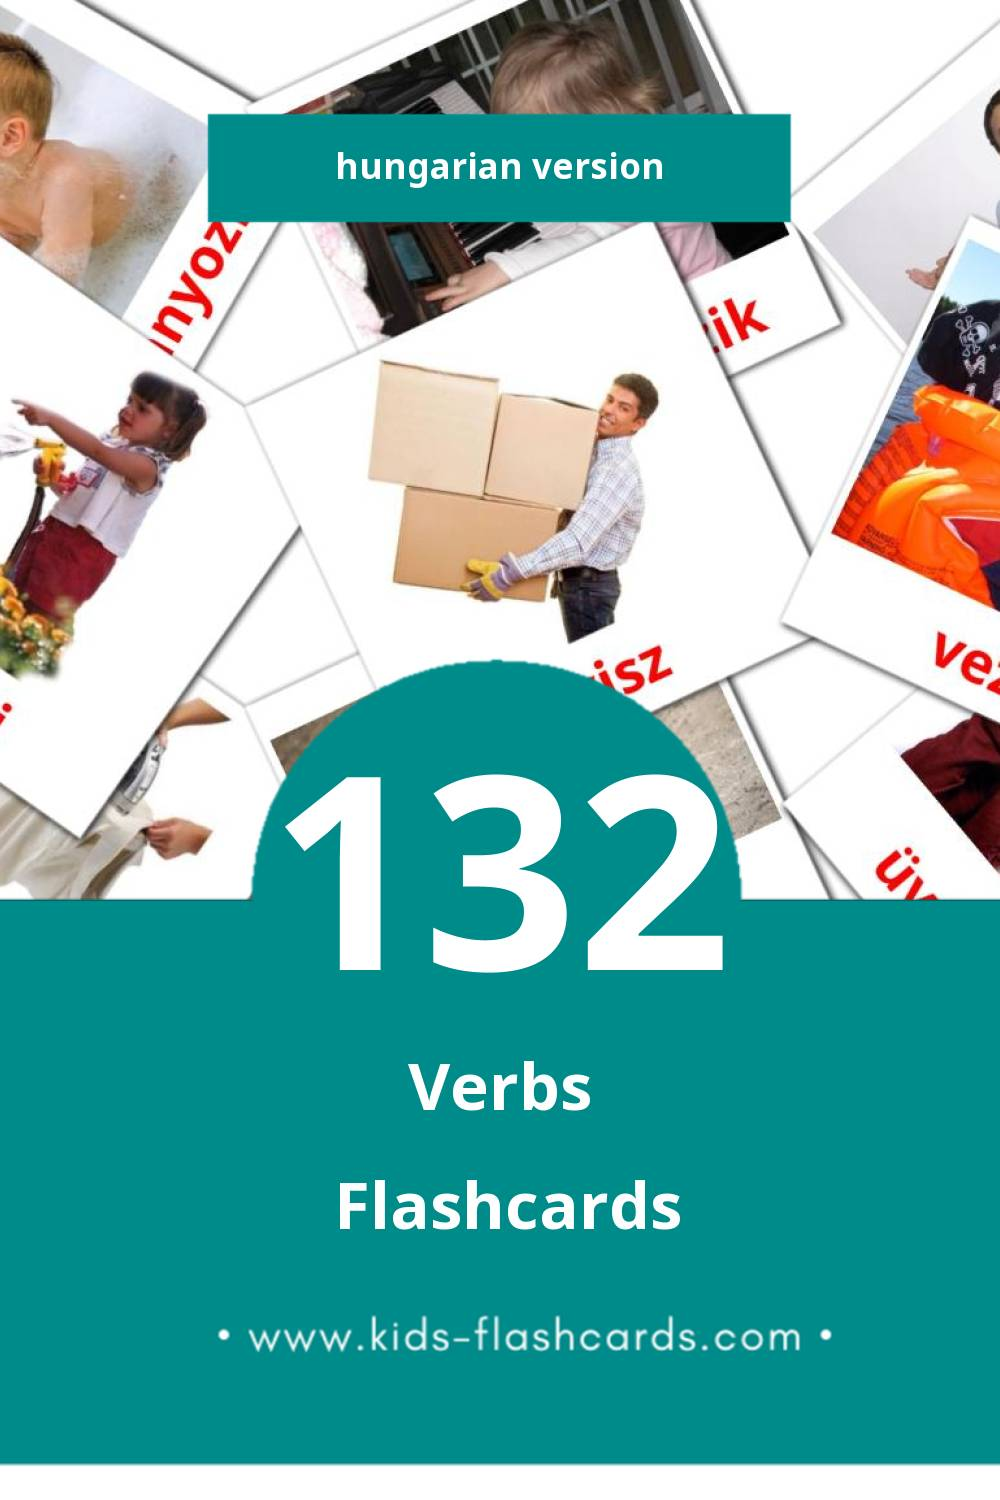 Visual Igék Flashcards for Toddlers (133 cards in Hungarian)